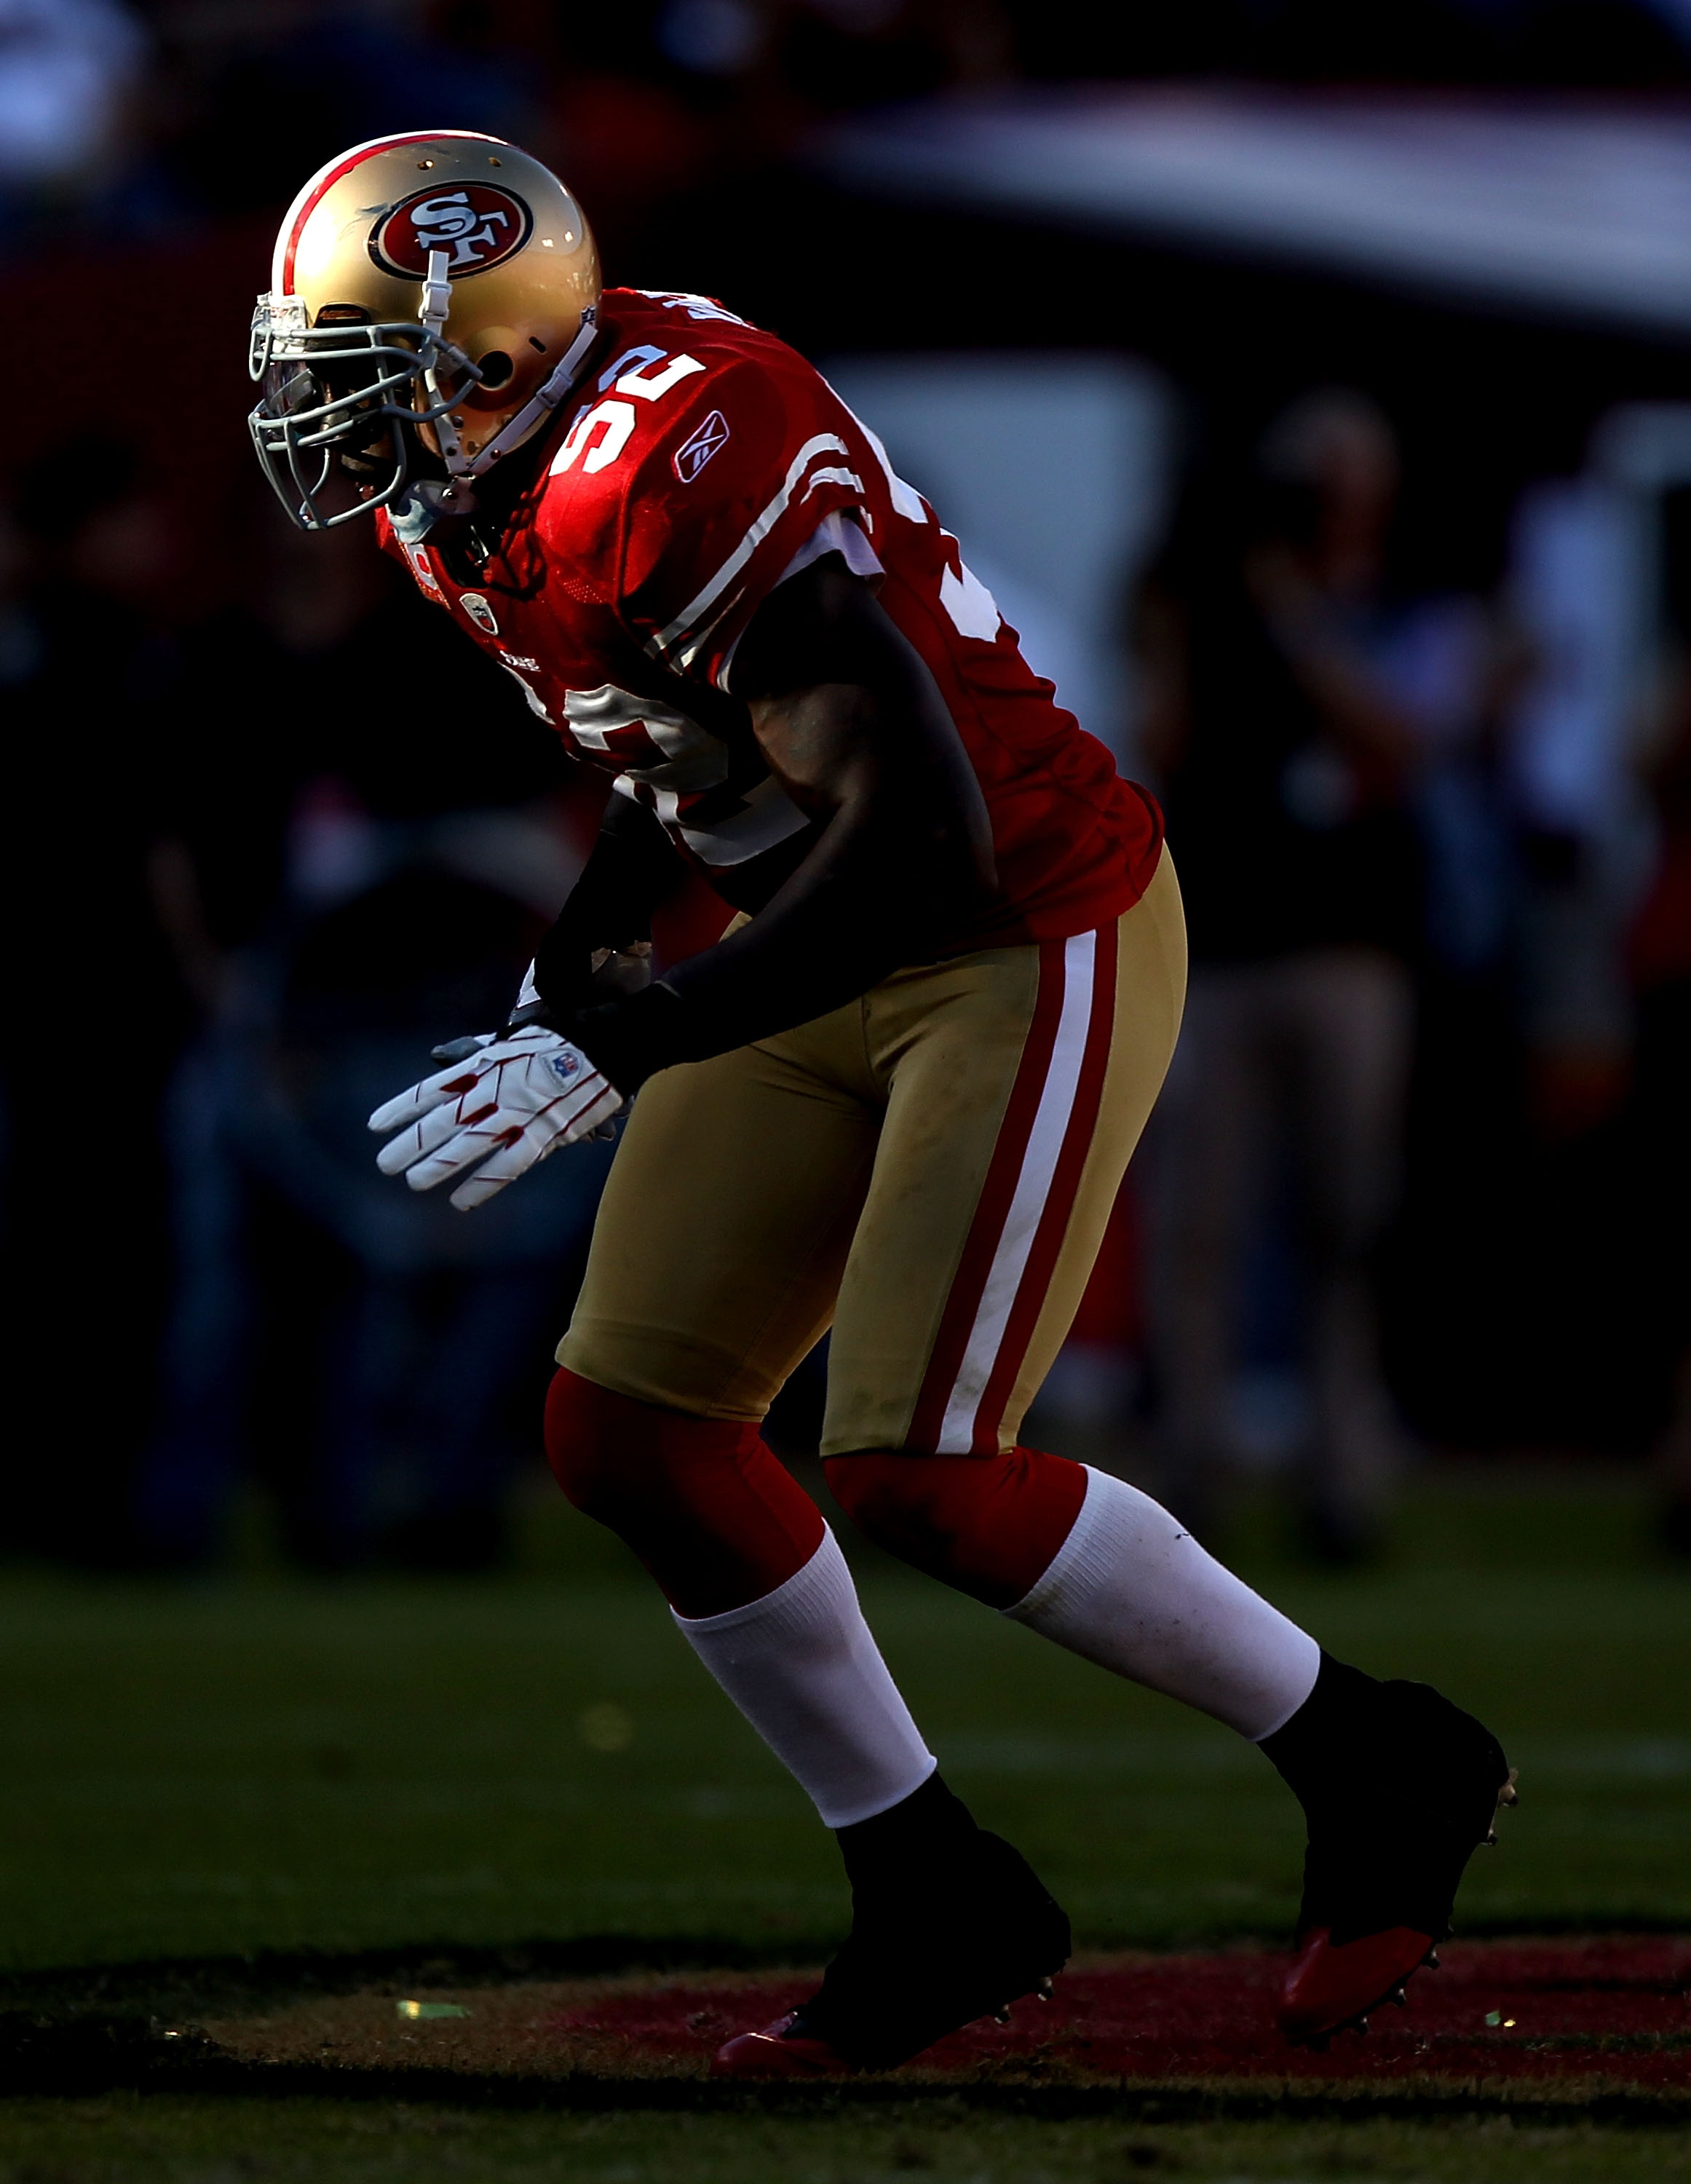 SAN FRANCISCO - NOVEMBER 14:  Patrick Willis #52 of the San Francisco 49ers in action against the St. Louis Rams during an NFL game at Candlestick Park on November 14, 2010 in San Francisco, California.(Photo by Jed Jacobsohn/Getty Images)